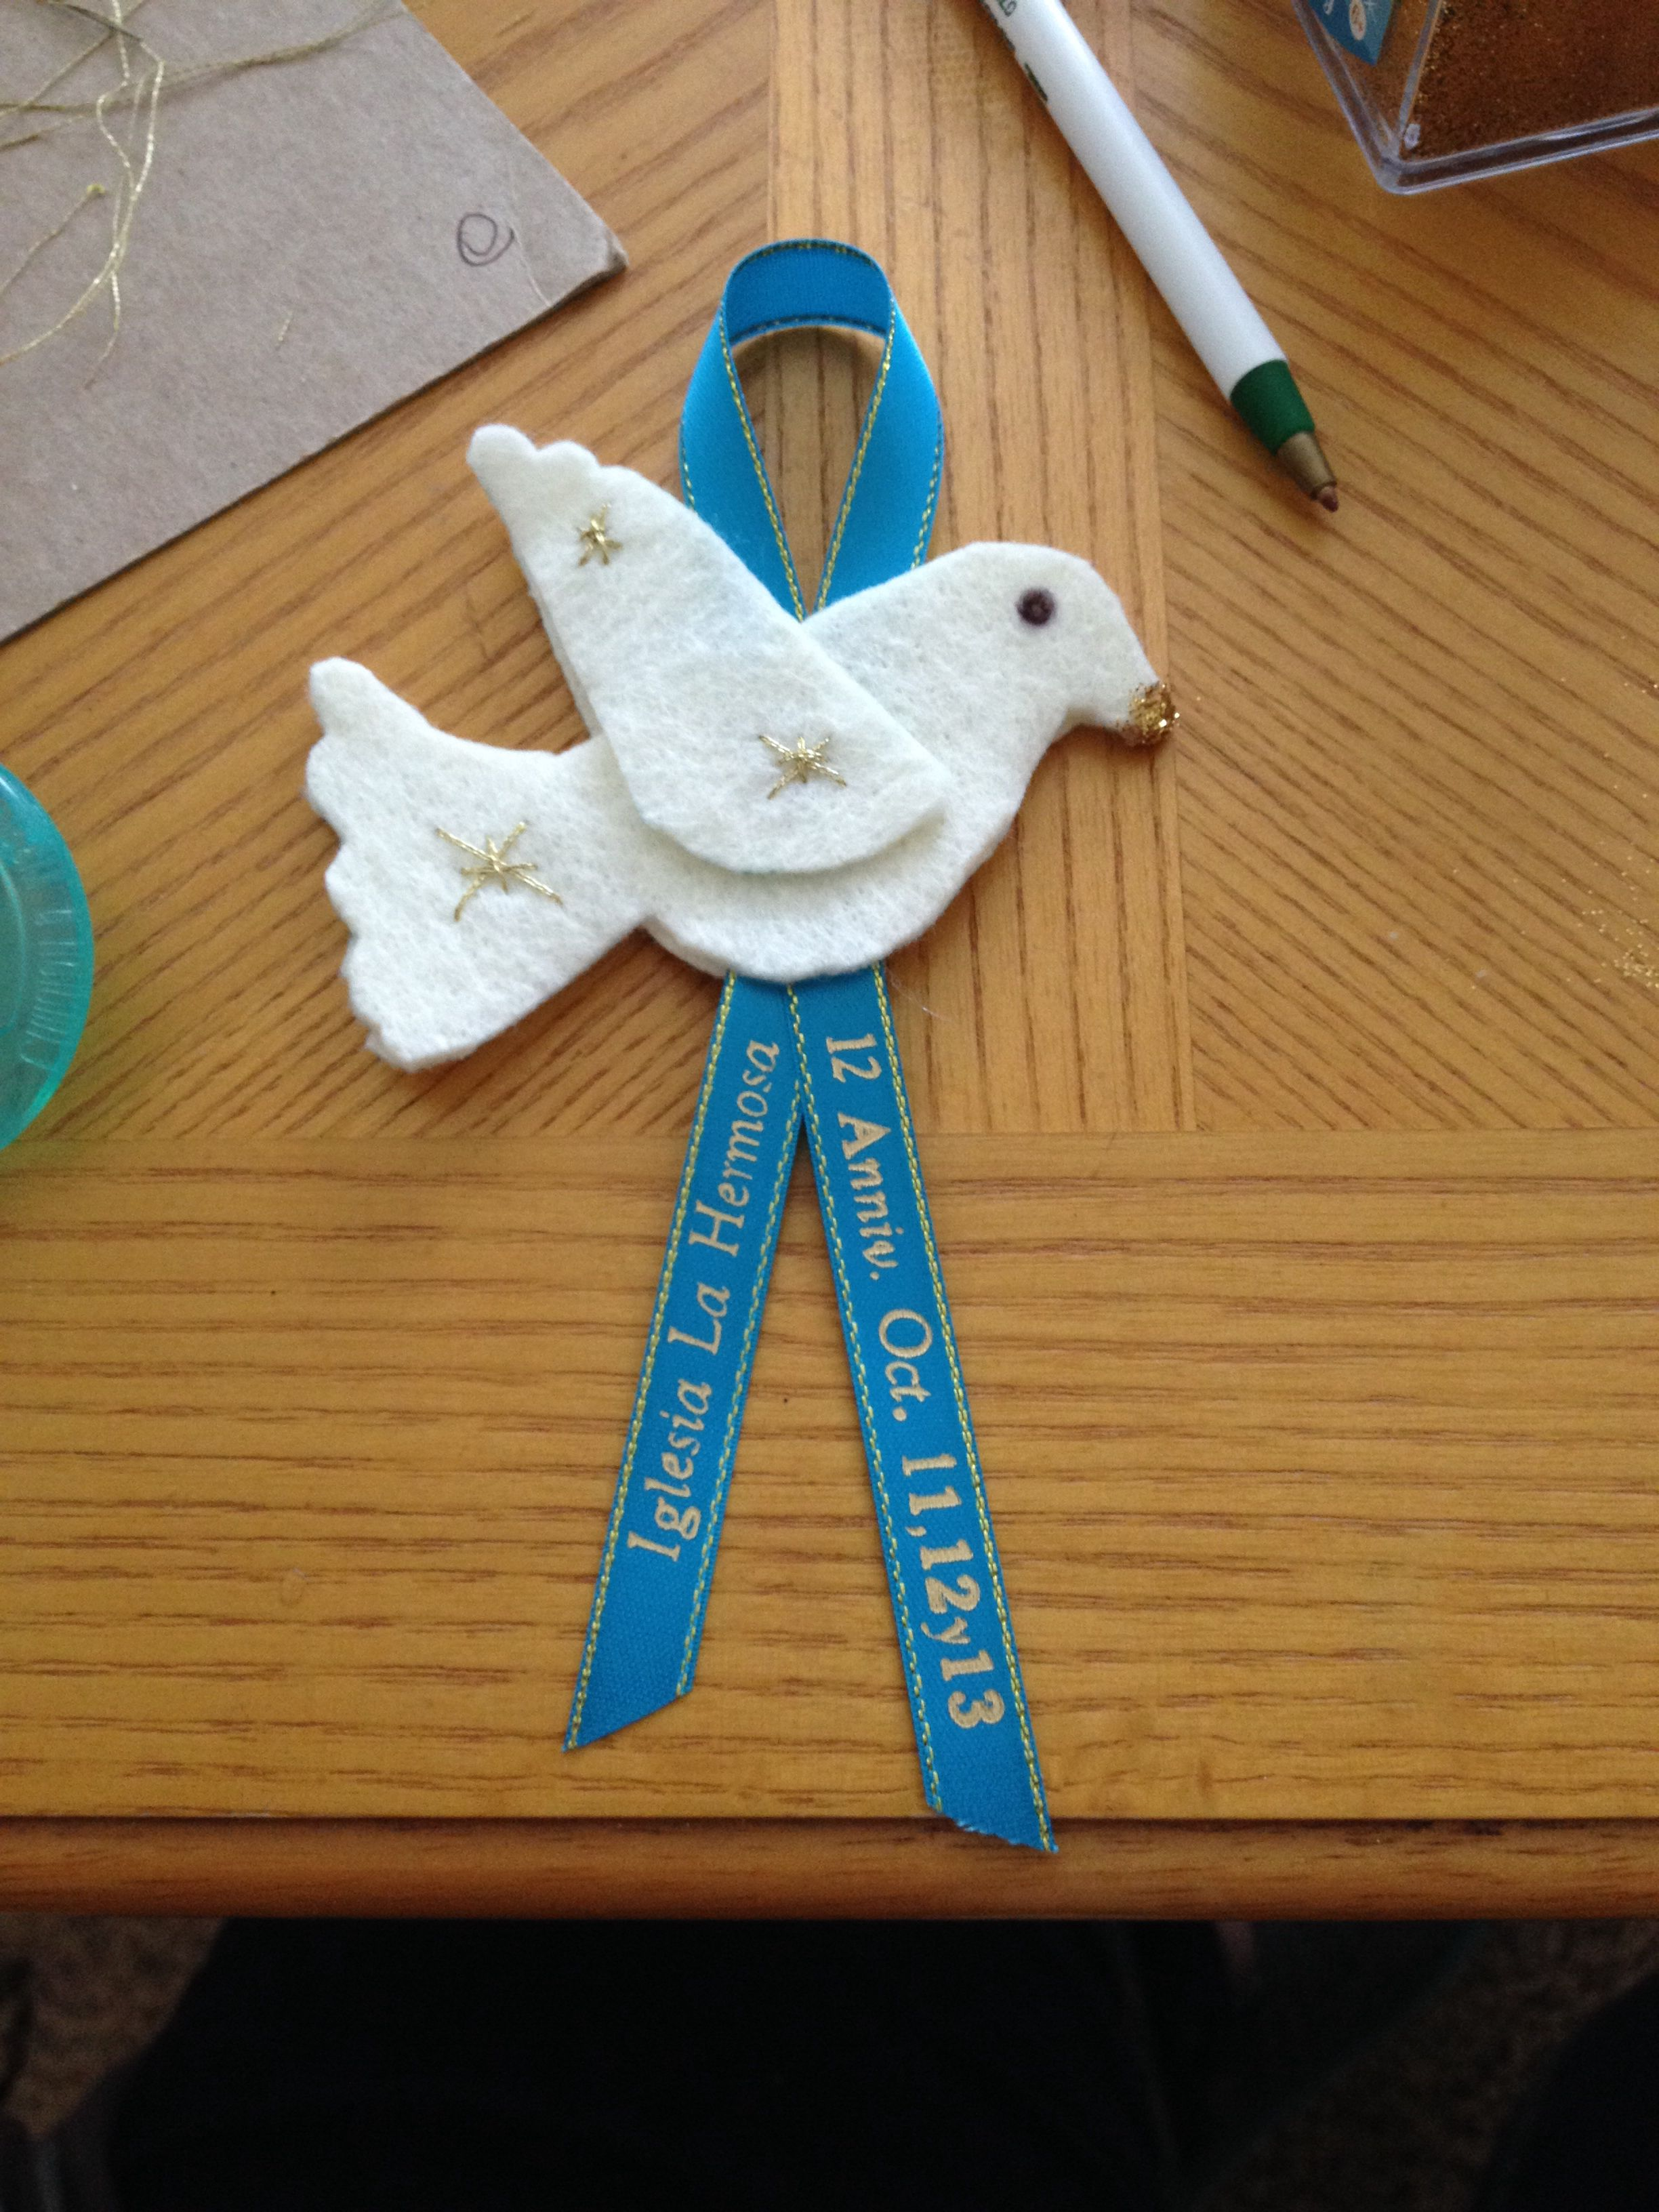 church anniversary favors dove turquoise printed ribbon family